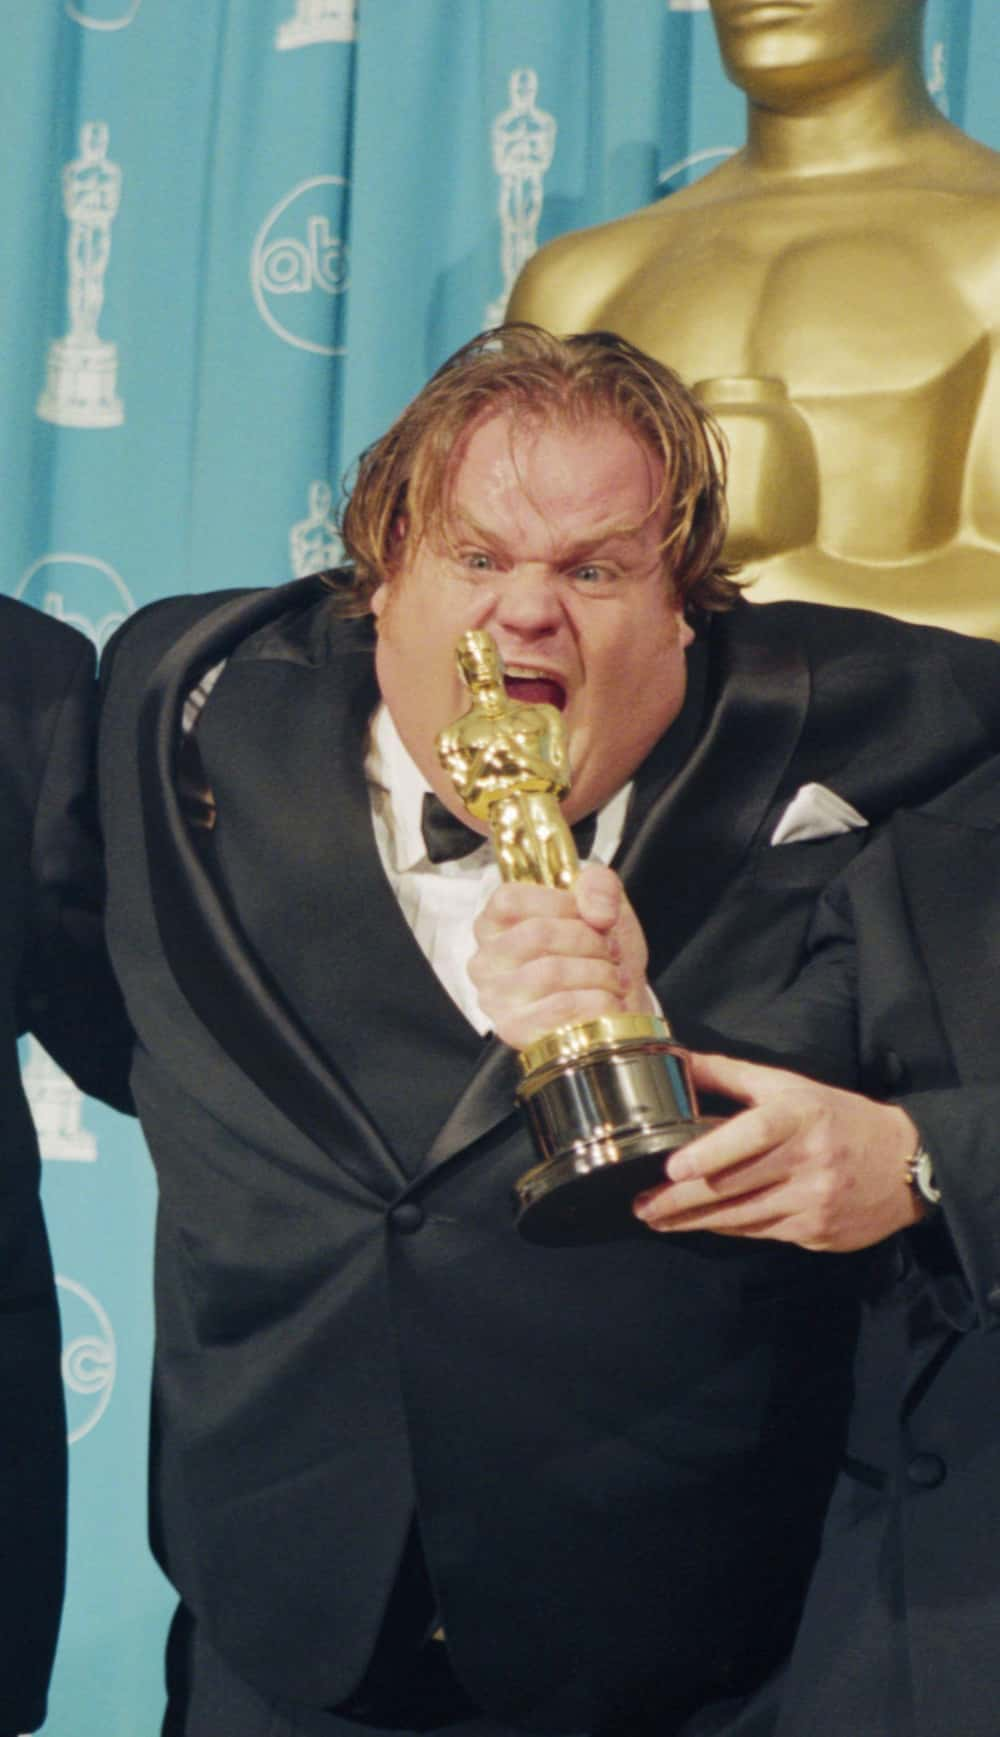 Chris Farley is listed (or ranked) 1 on the list The Top 10 Fattest Celebrities Who Died Young